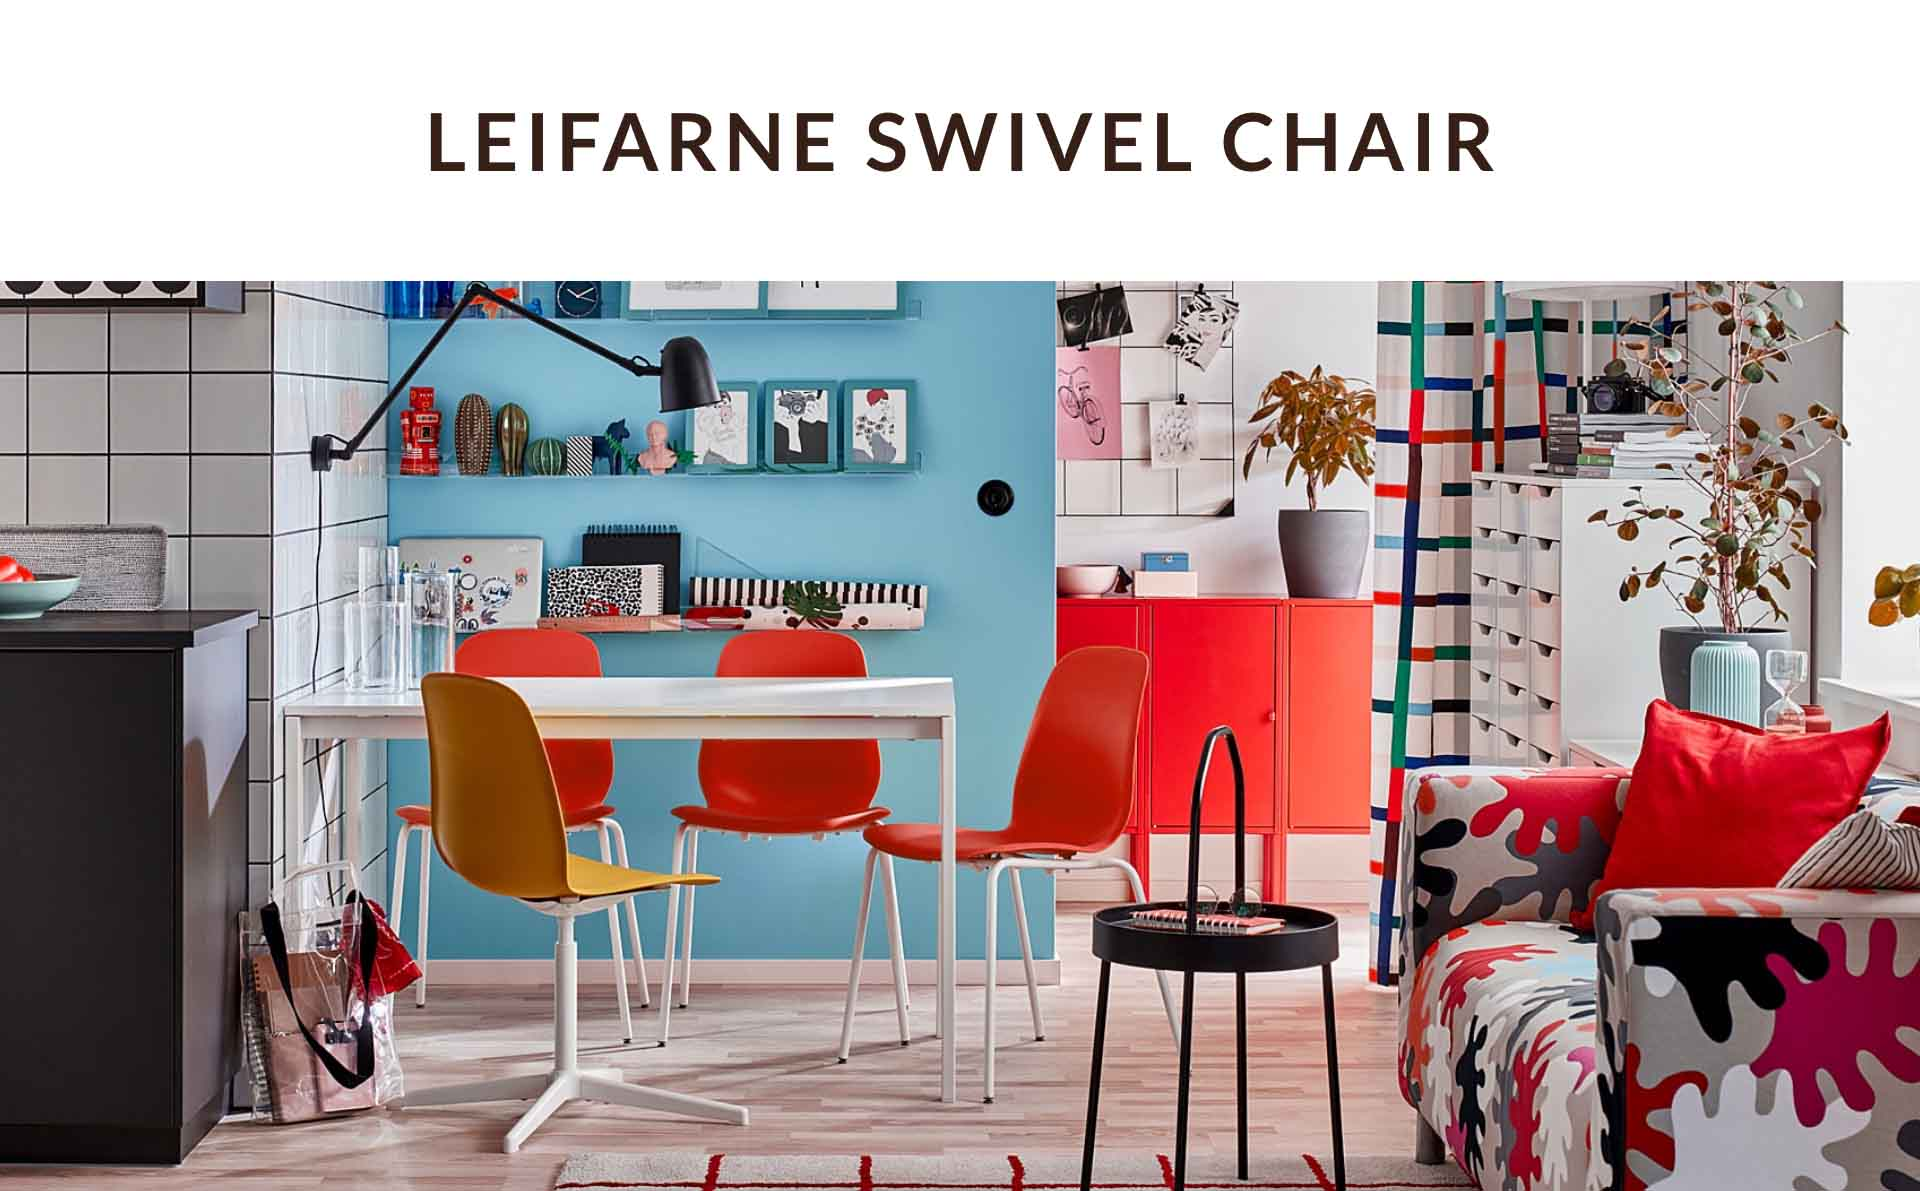 Leifarne Swivel chair   invisiblebed.com